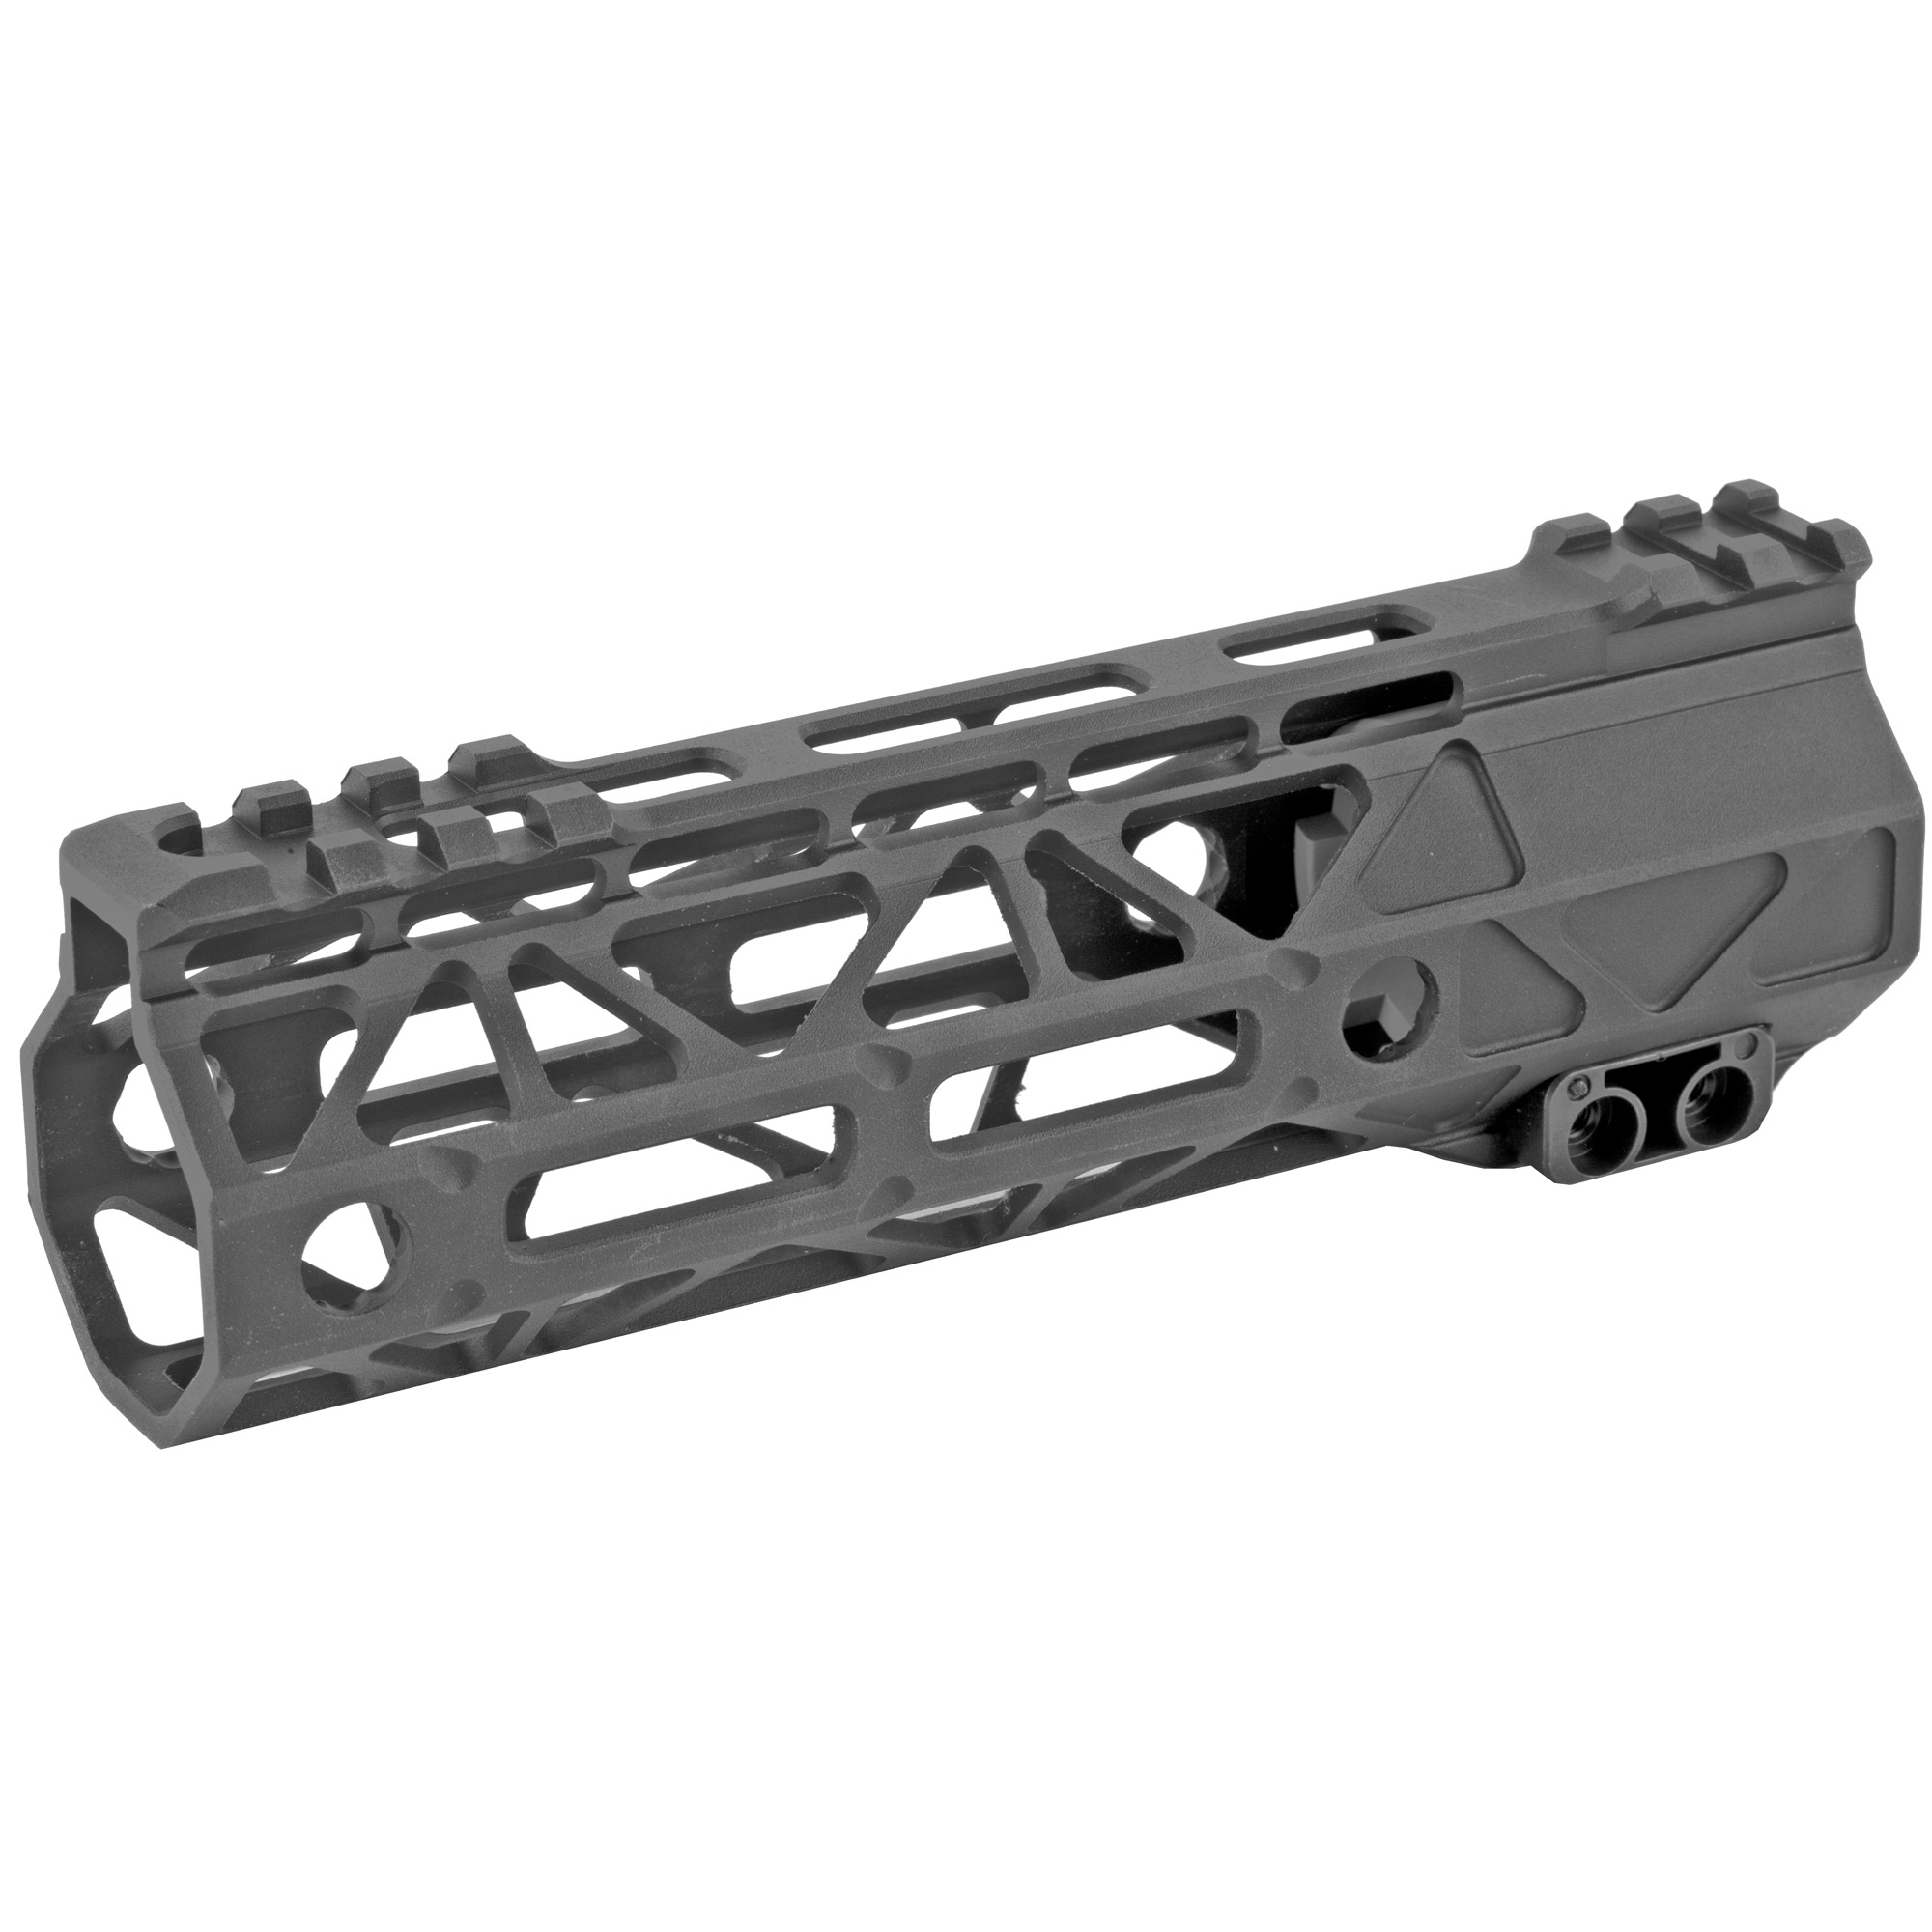 "The Battle Arms Development's Rigidrail 6.7"" M-Lok Handguard is designed to balance between light weight and strength/rigidity. The overall length is 6.7"" and the inner diameter is 1.315"". M-LOK Slots at 3"" 6"" 9"" and partial 12 o'clock positions"" and additional single M-Lock slots at four"" 45 degree positions"" for forward mounting light"" laser"" etc. It is compatible with AR-15 upper receivers and most low profile gas blocks."